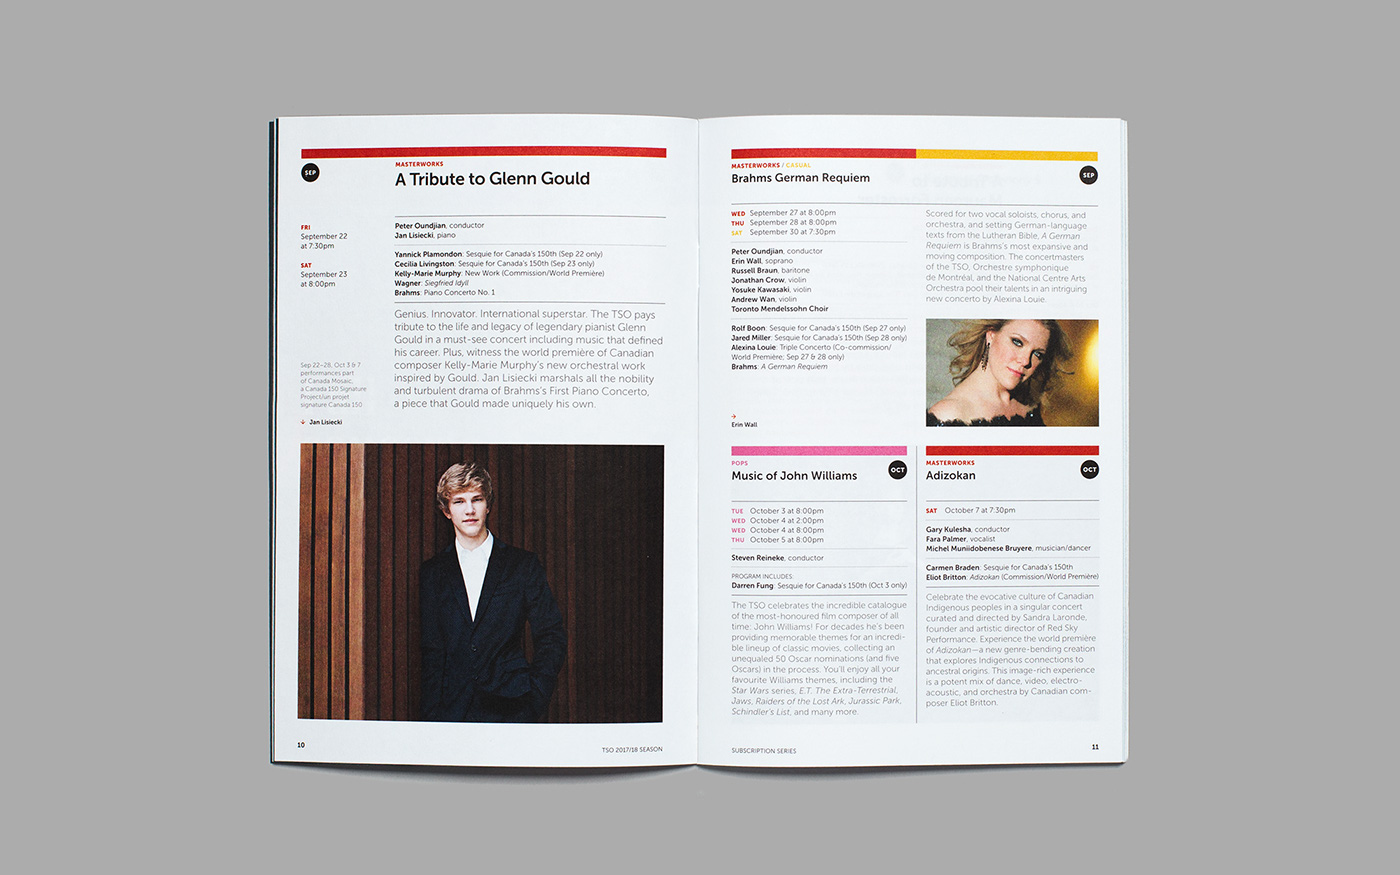 toronto symphony orchestra tso symphony orchestra brochure design information design pricing guide direct marketing subscription brochure music